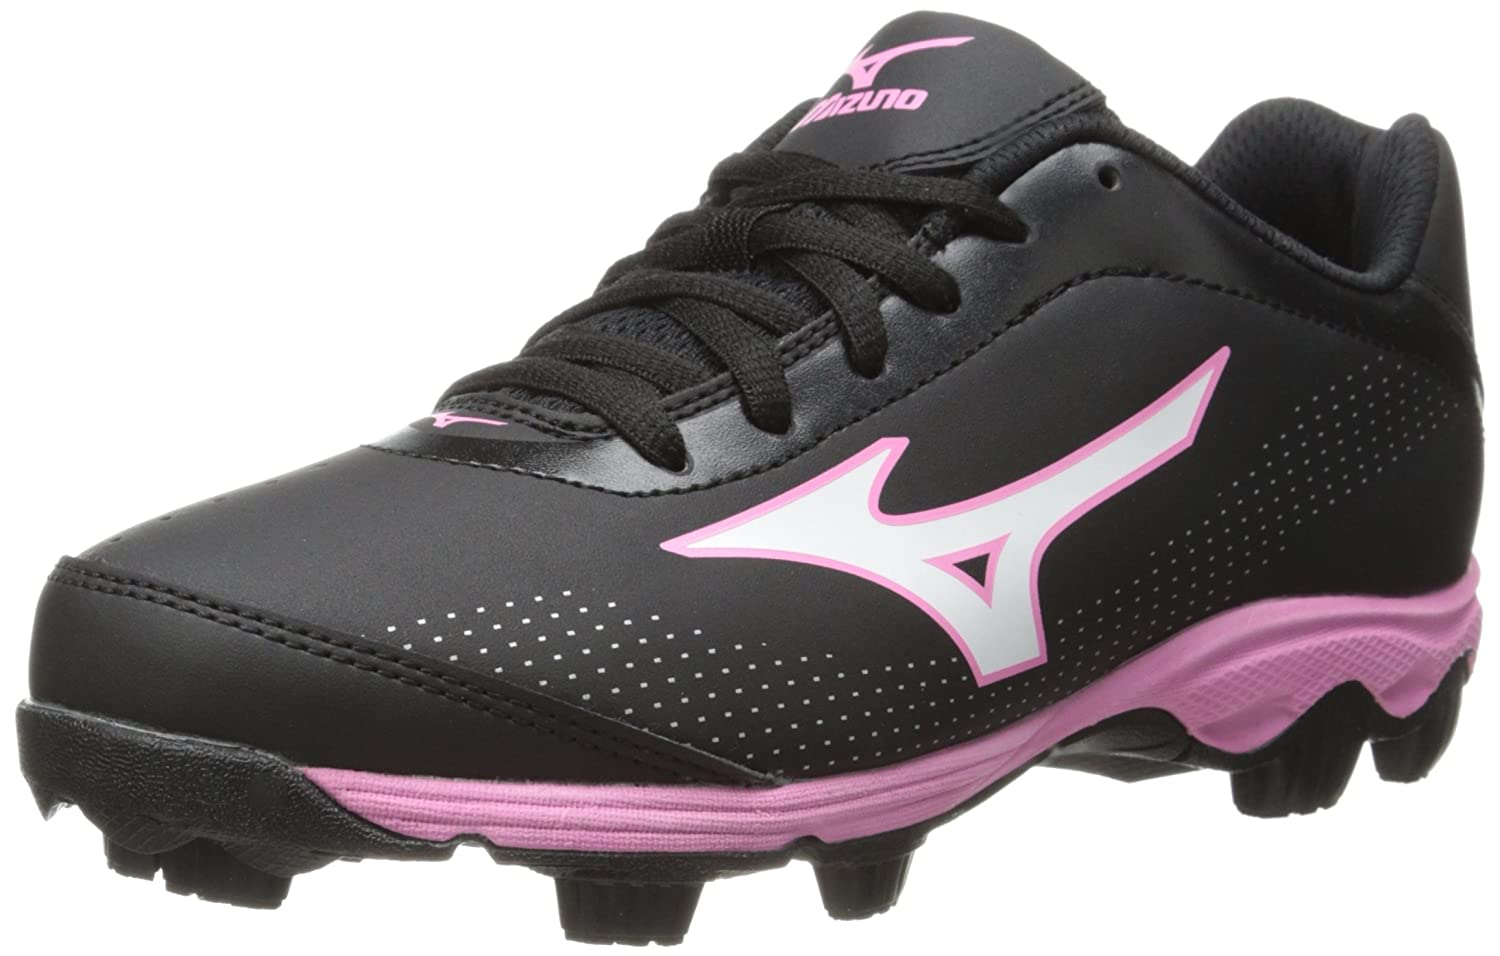 Mizuno Youth Finch Franchise 5 Softball Cleat (Little Kid/Big Kid) Black/Pink 1.5 M US Little Kid Youth Finch Franchise 5 - K